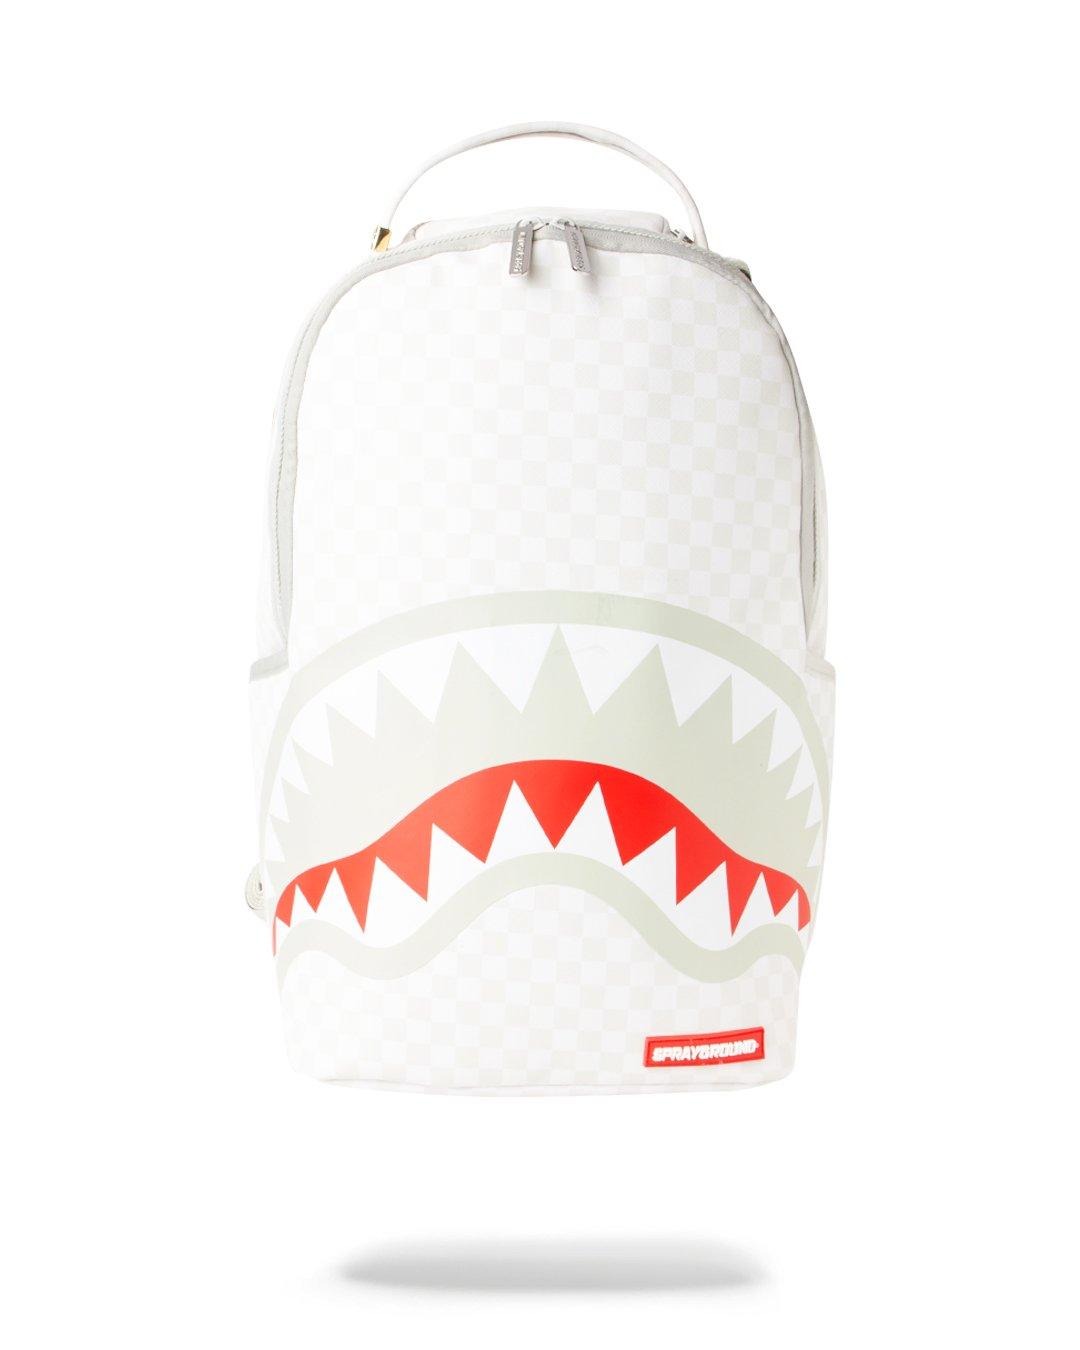 Fashion Space Store Shop Online Clothing Footwear Accessories Streetwear And Urban Fashion Sprayground Sharks In Paris Mean Clean Backpack